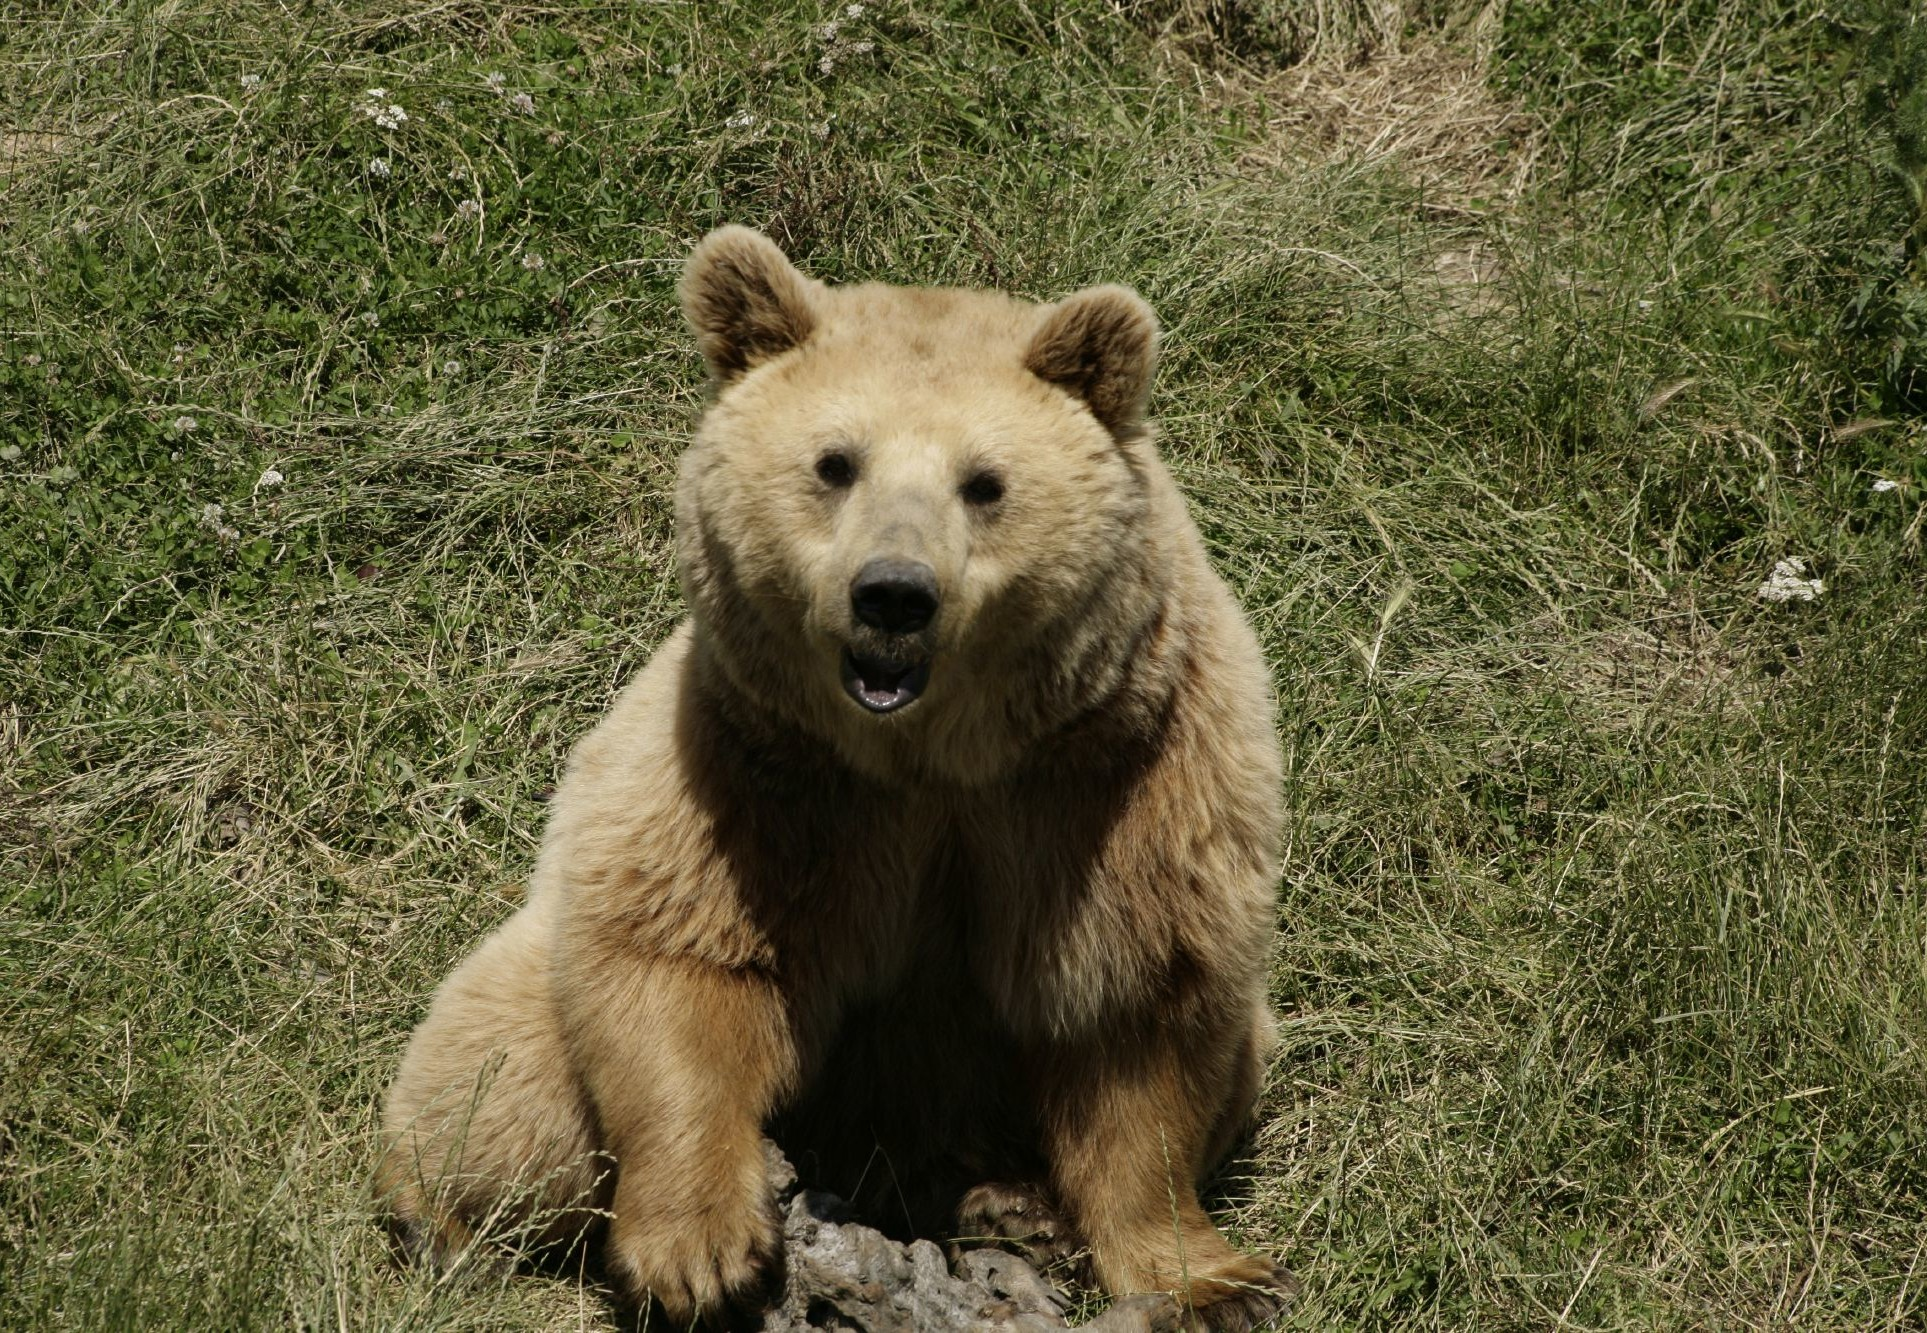 Brown bear Lena sitting in the grass